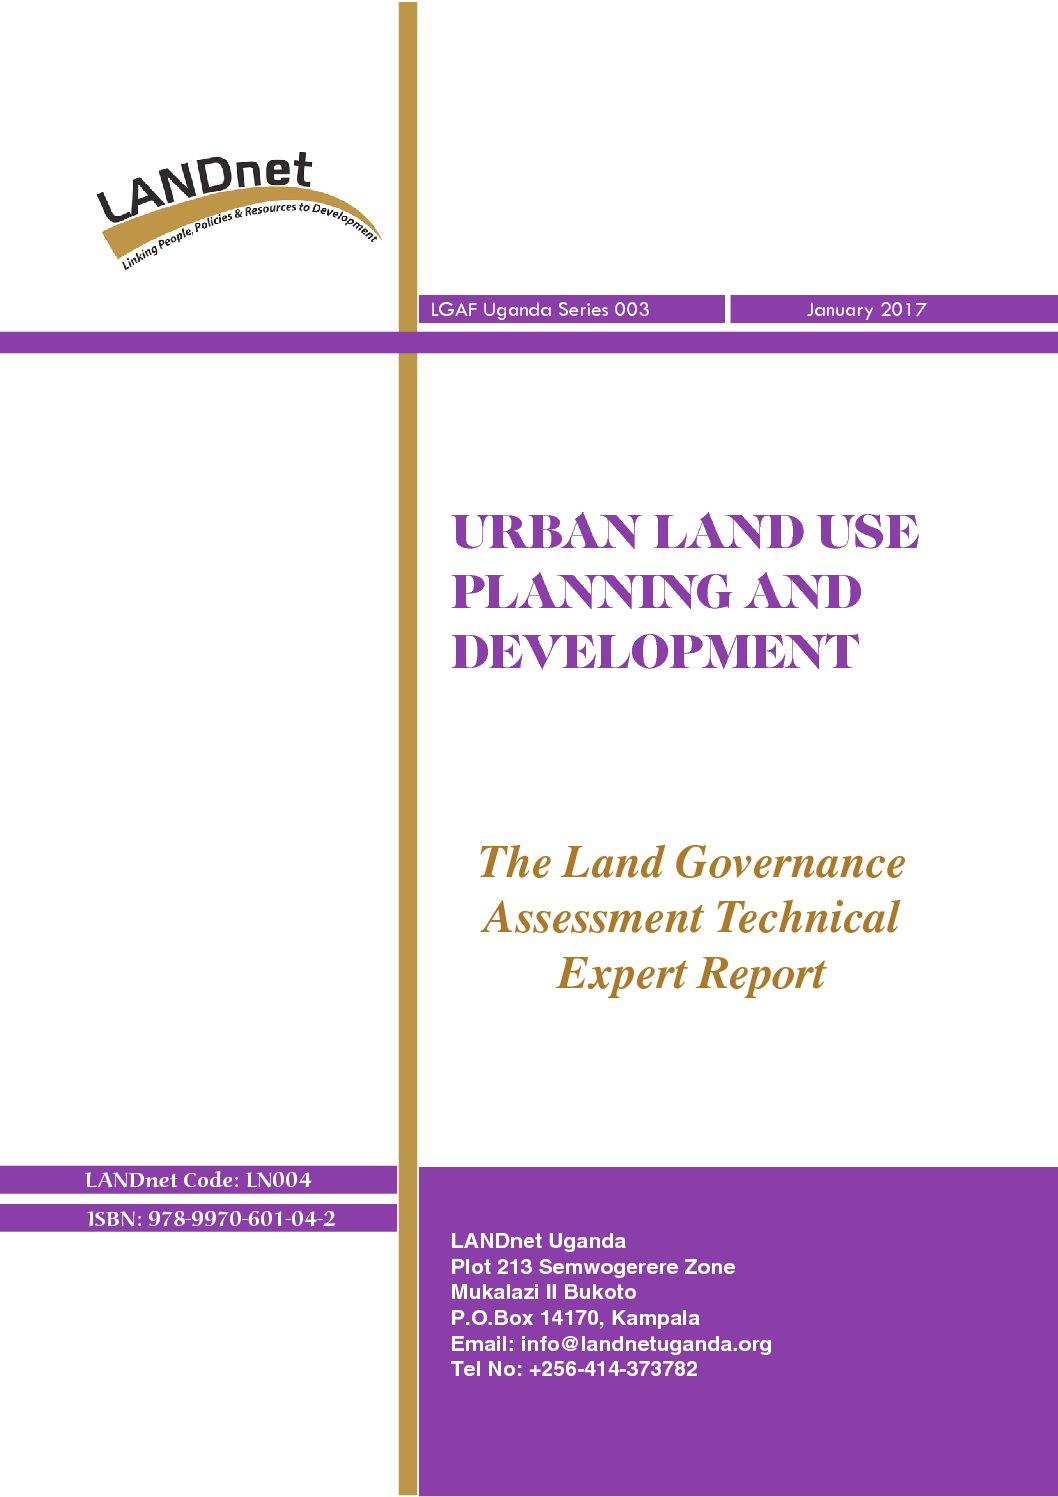 Urban Land Use Planning and Development